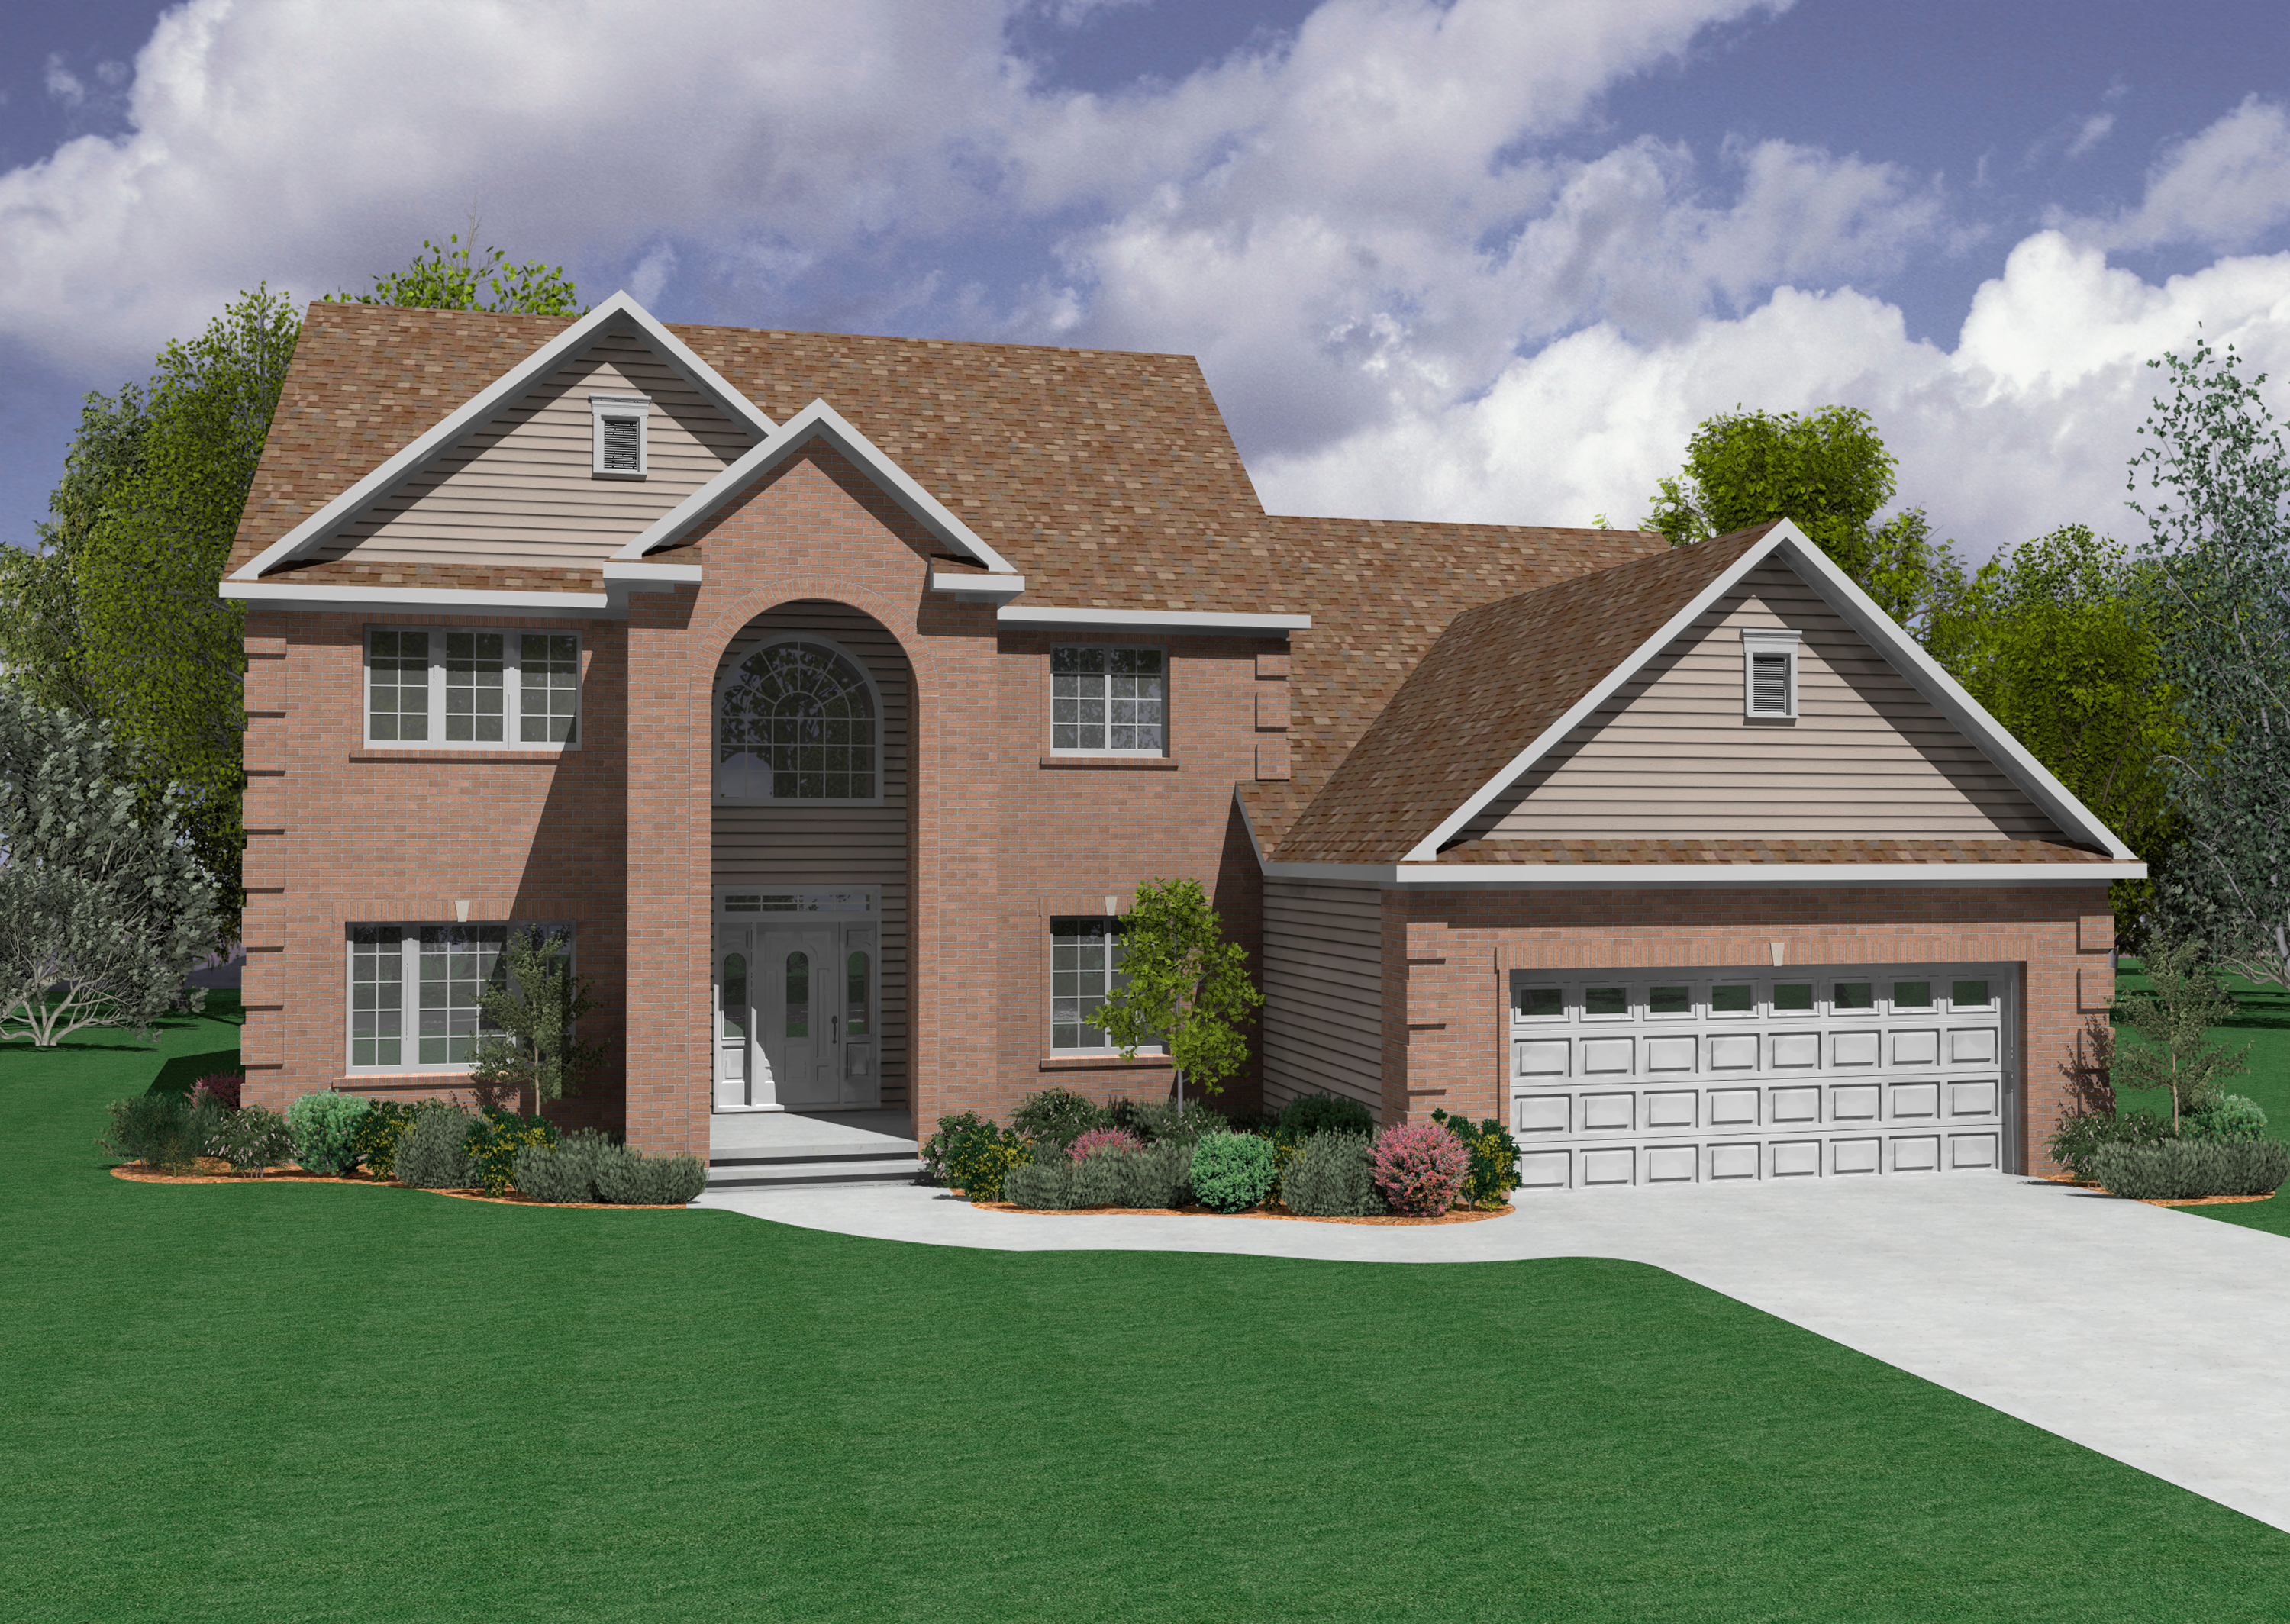 Two Story Modular Home Collection Of Floor Plans By Oasis Homes